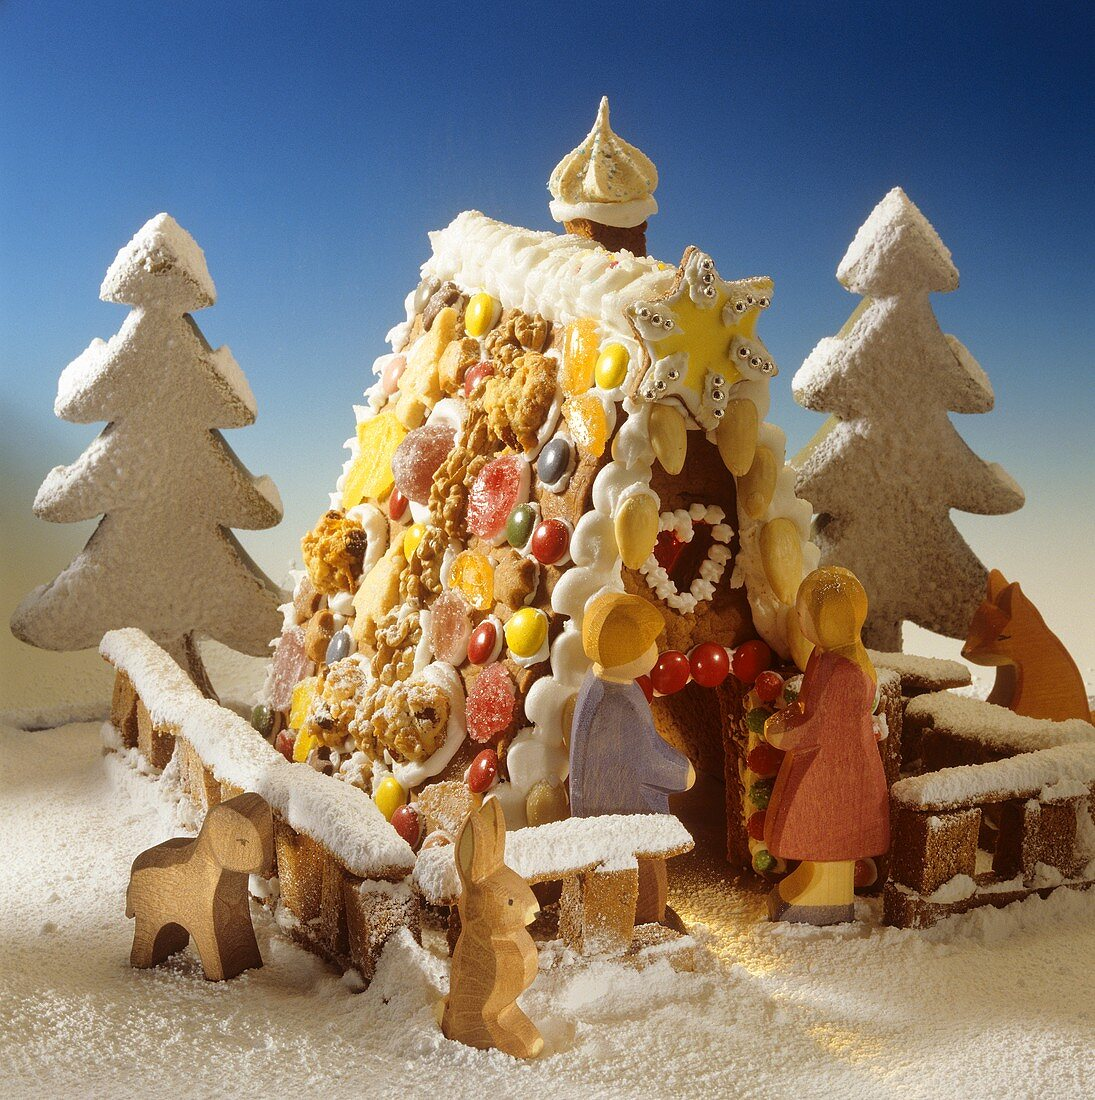 Gingerbread house with wooden figures